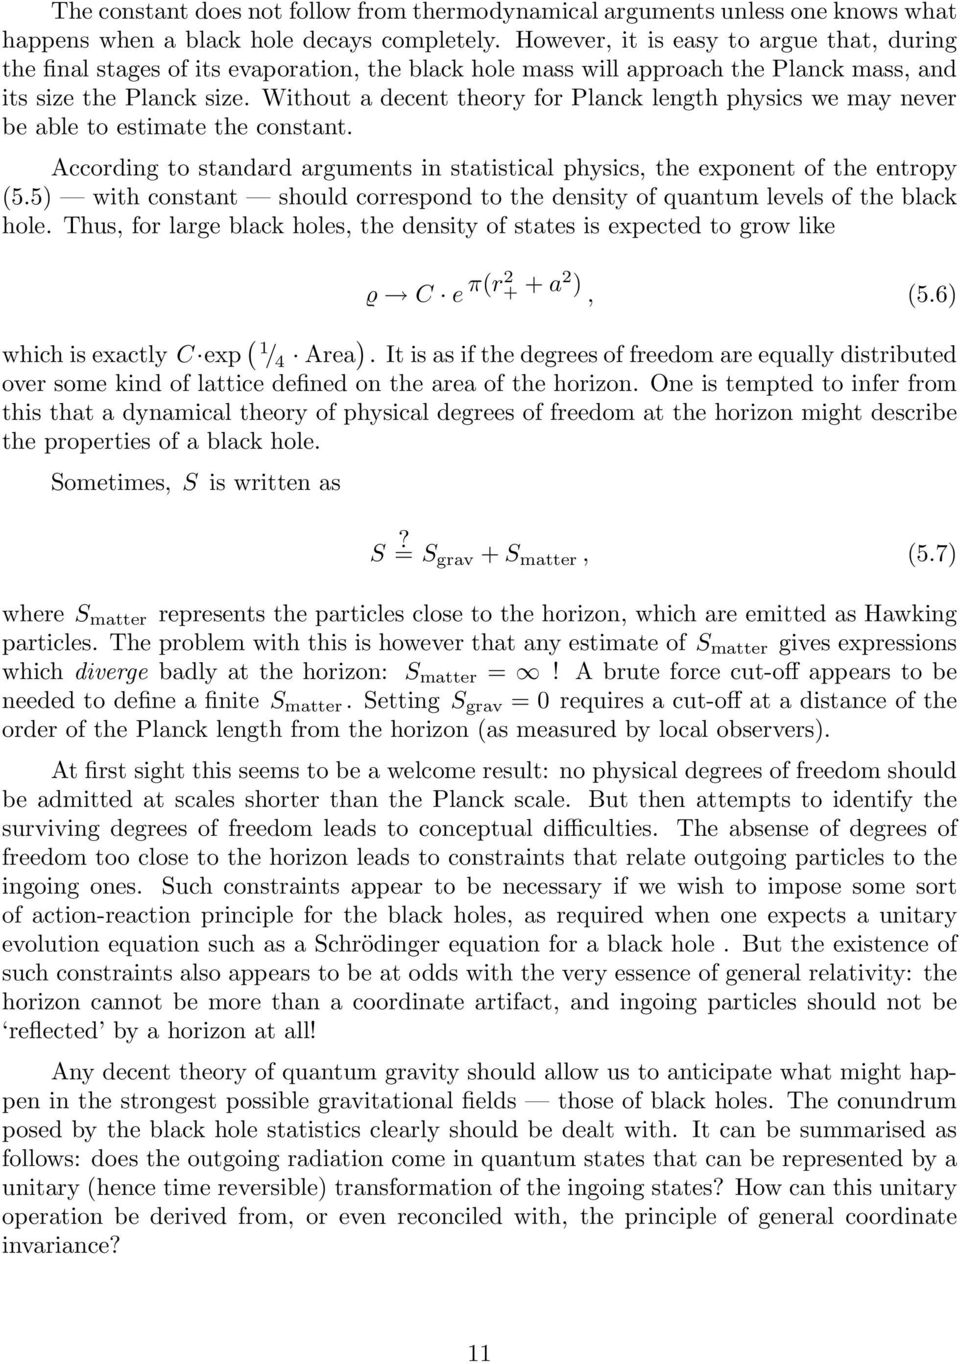 Without a decent theory for Planck length physics we may never be able to estimate the constant. According to standard arguments in statistical physics, the exponent of the entropy (5.